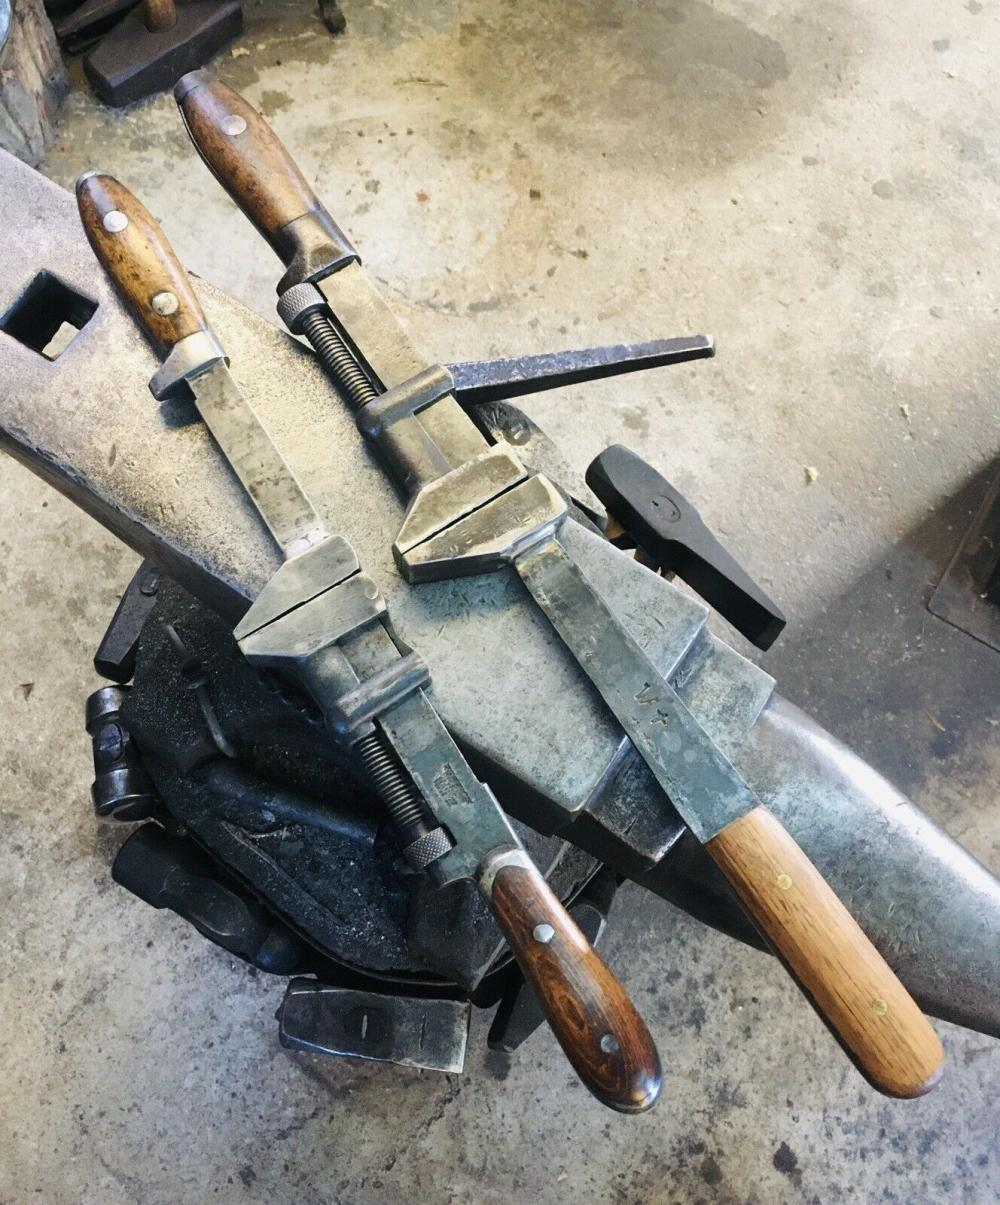 Name:  Twisting Wrenches.jpg Views: 125 Size:  195.5 KB